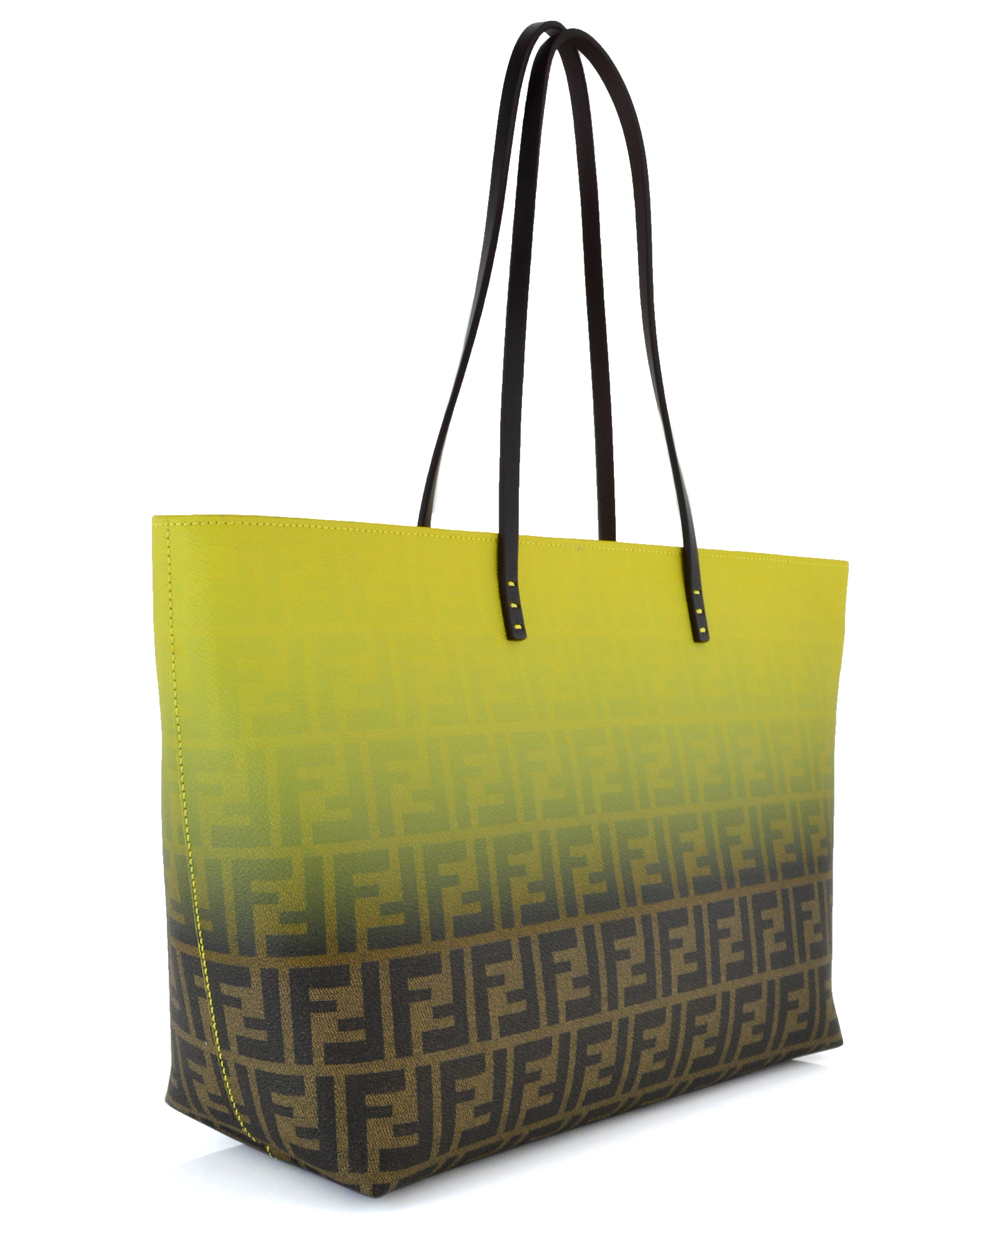 Lyst - Fendi Yellow Ombre Zucca Tote in Yellow